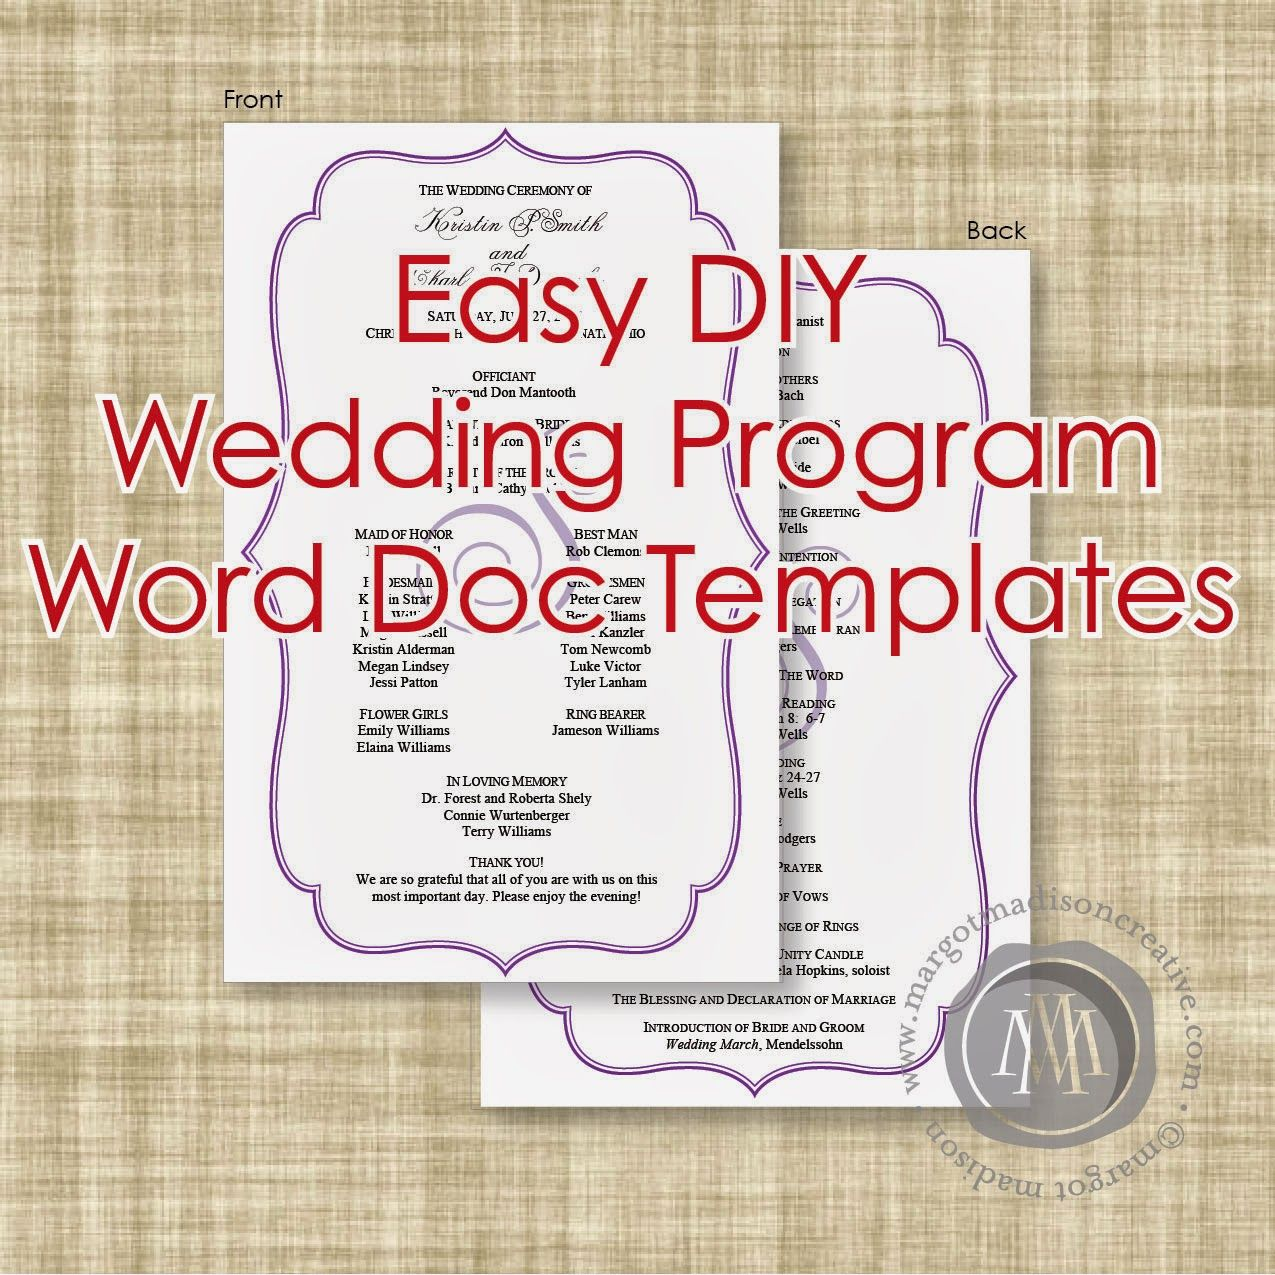 MargotMadison DIY Wedding Program Word Doc Templates Now Available - Wedding invitation templates: wedding program template word